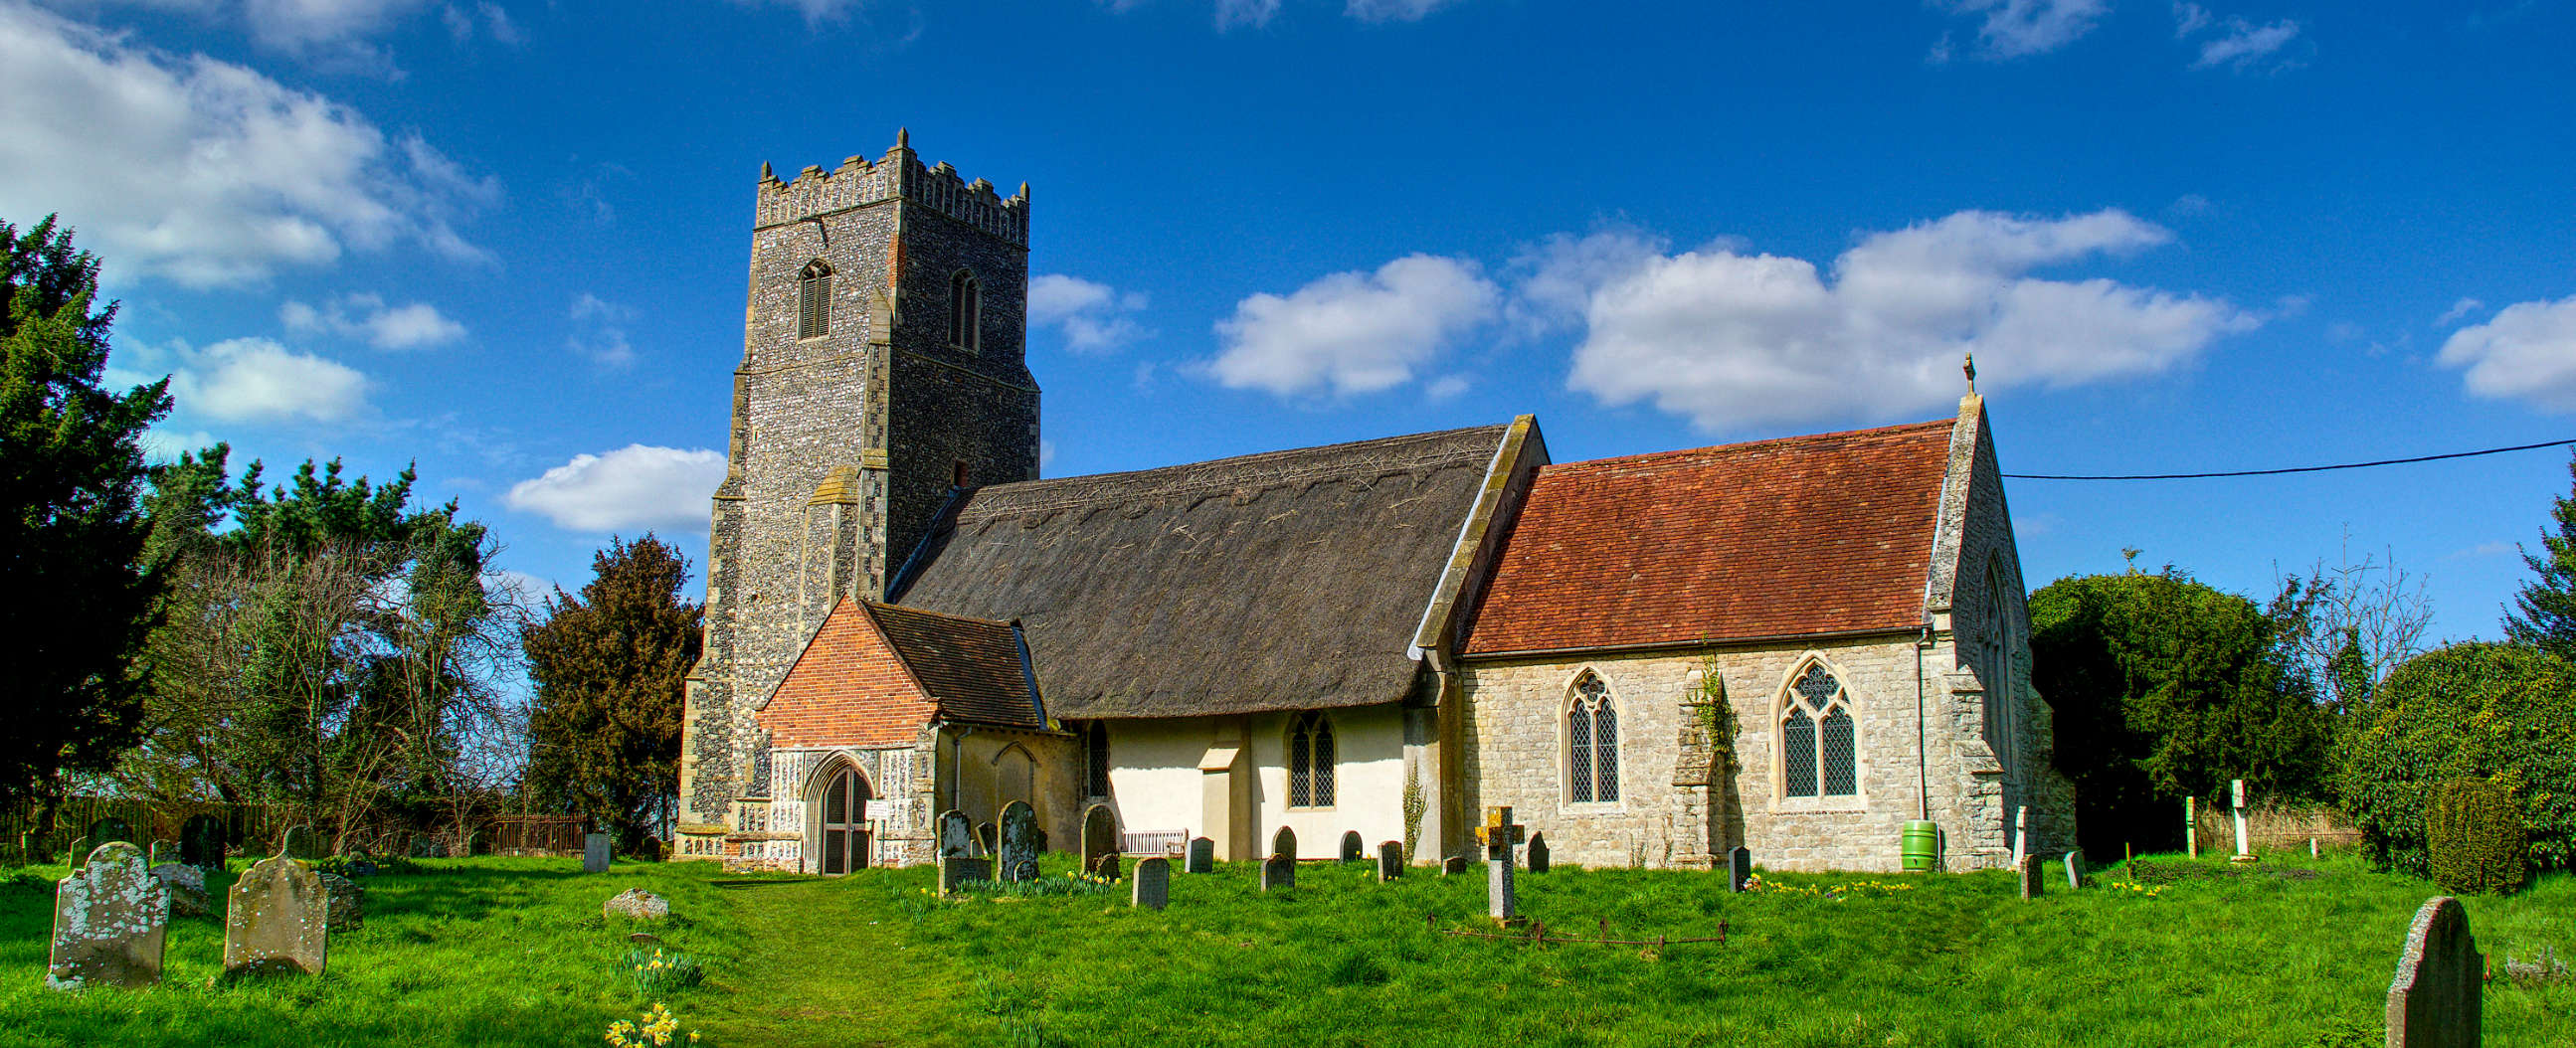 St Botolphs church, Iken - UK